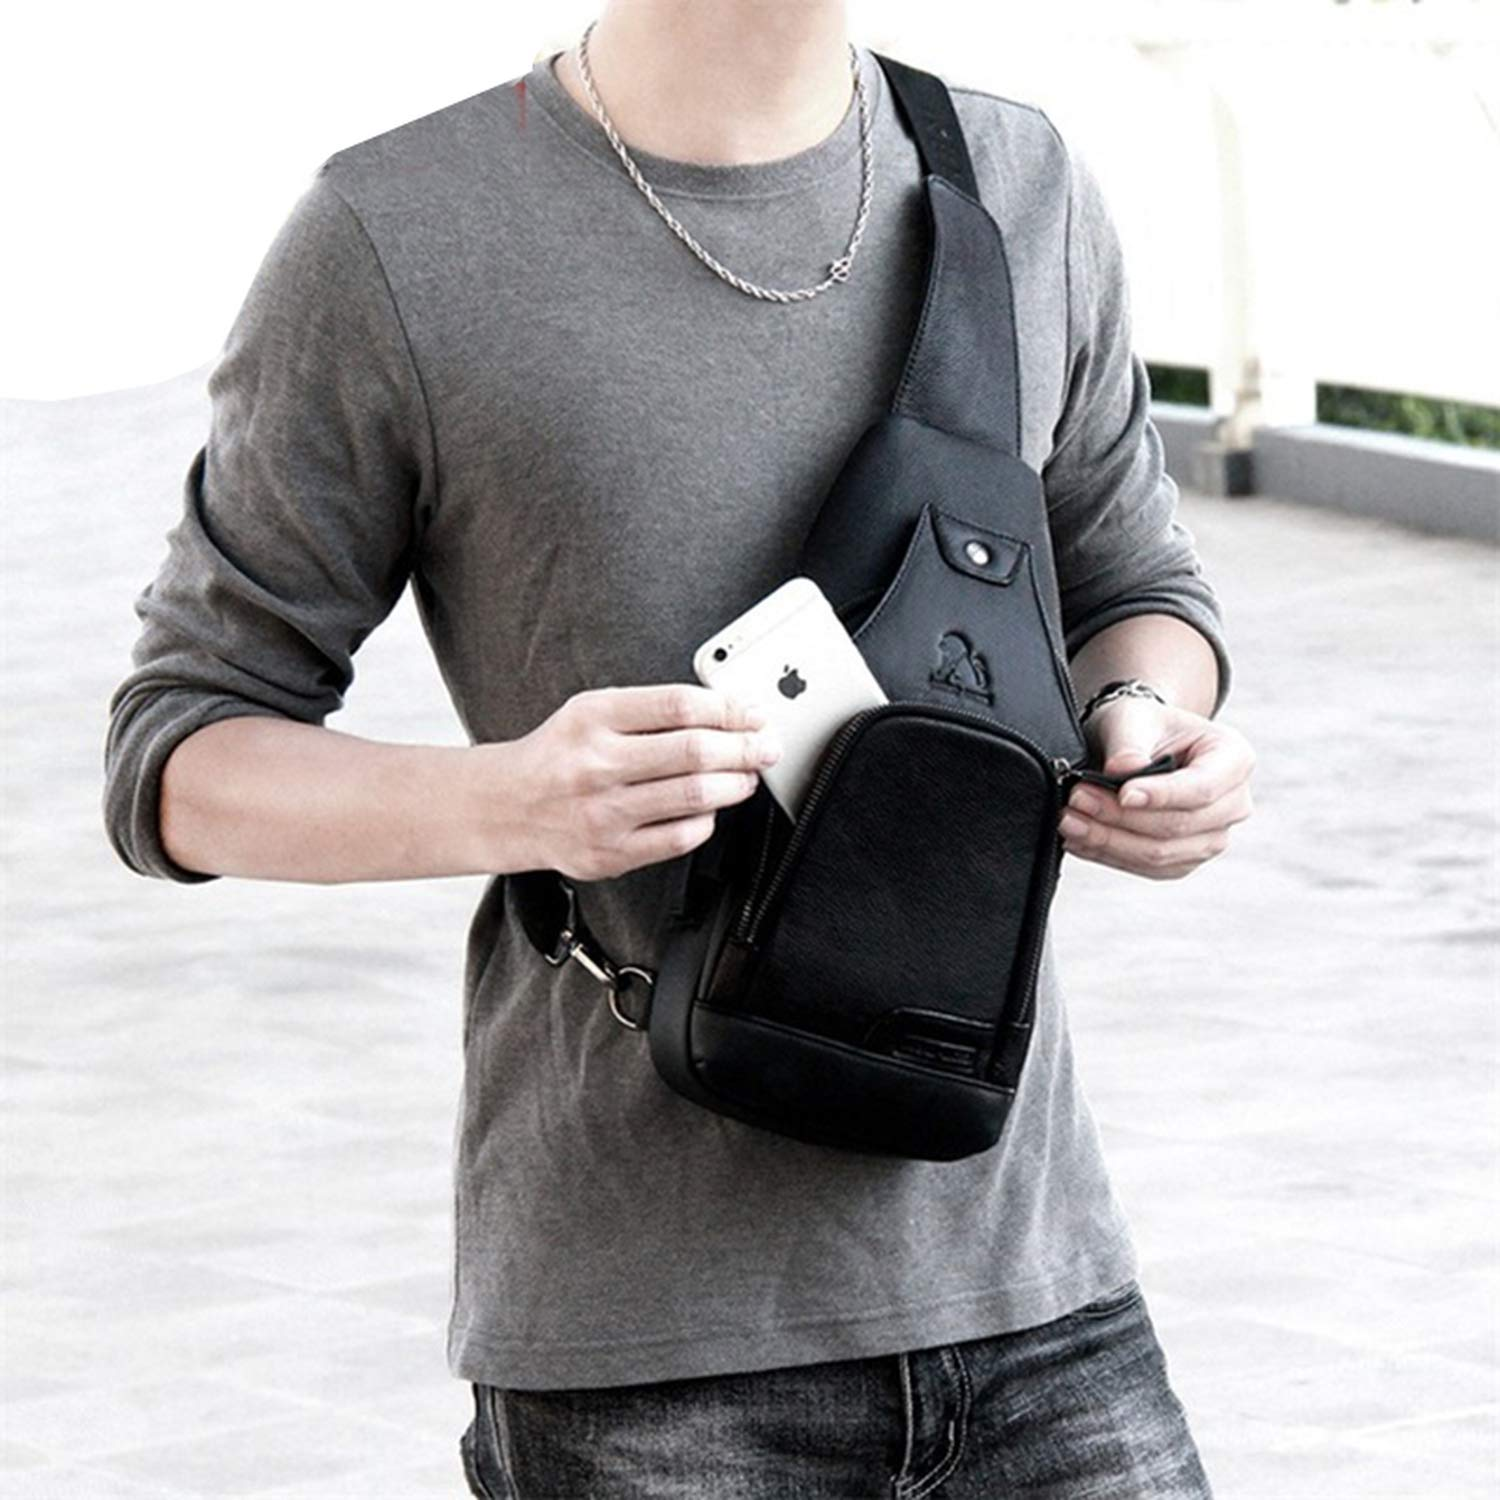 Men Leather Small Chest Bag Sling Messenger bag Fashion Travel Crossbody Bag USB charging